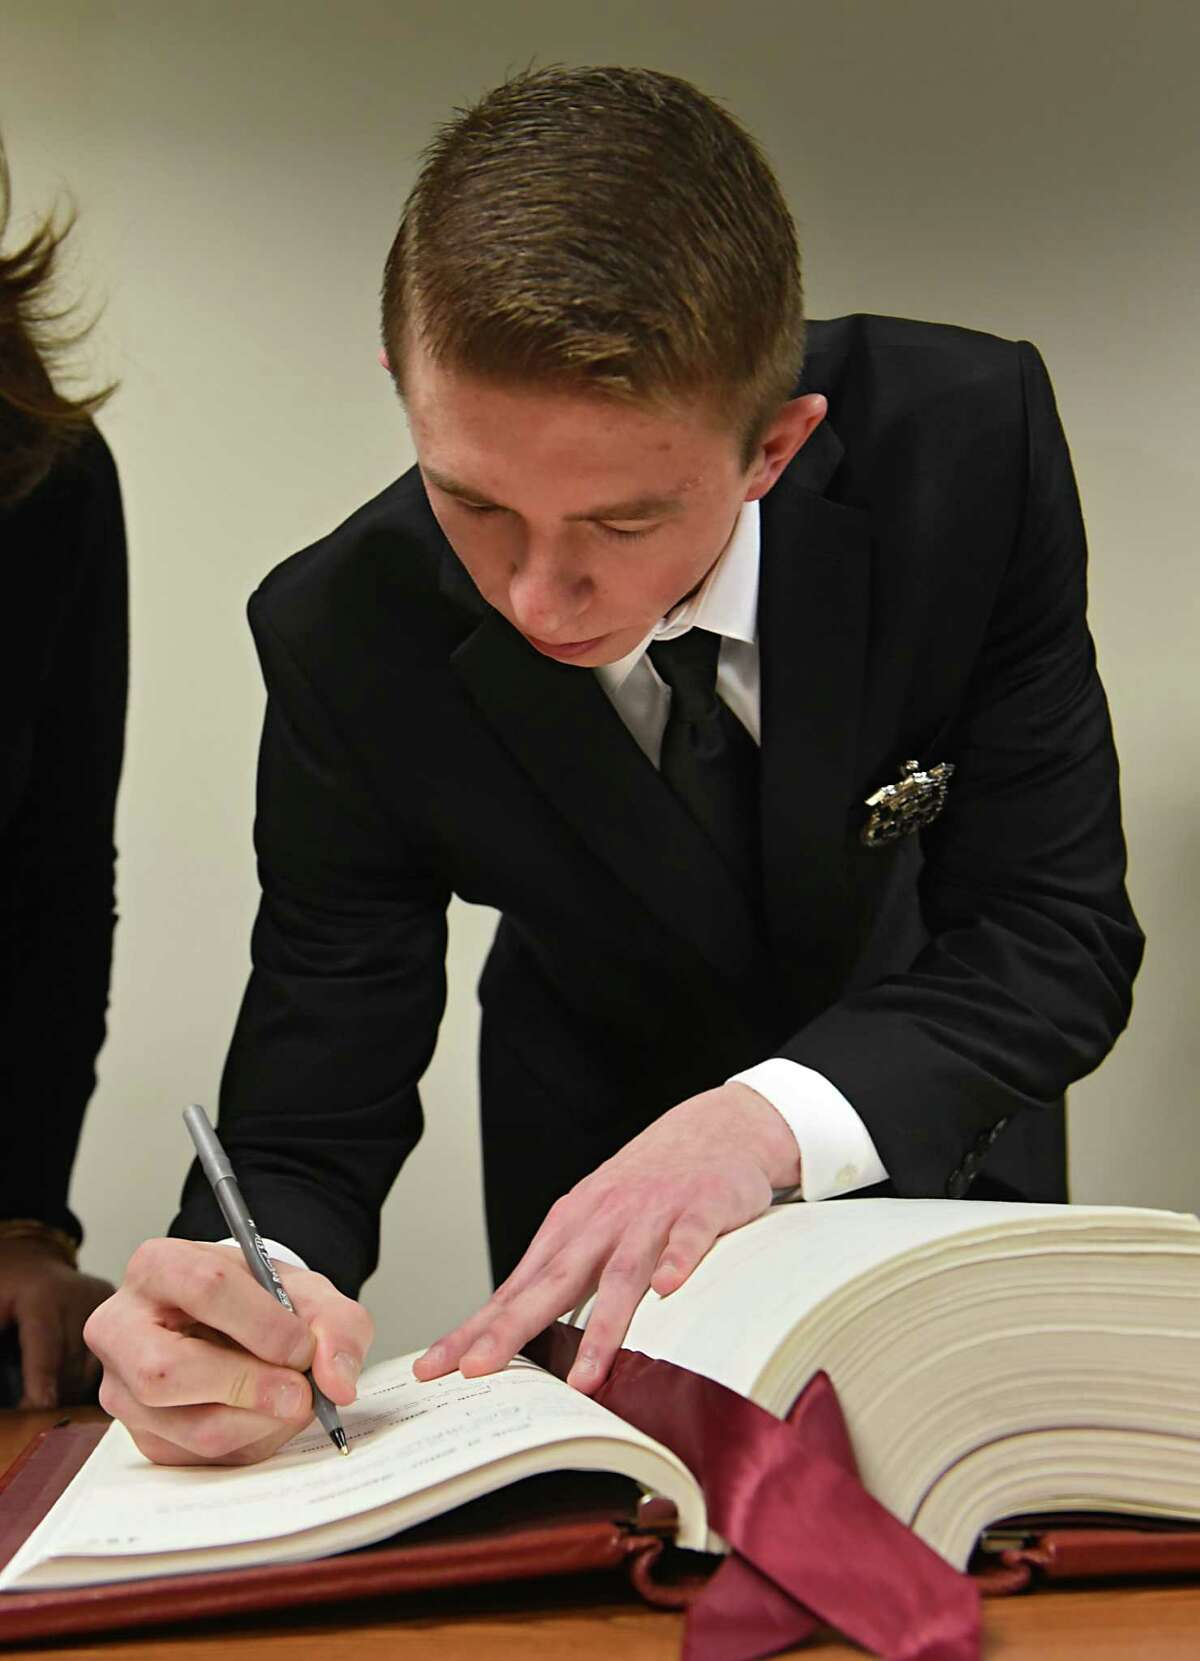 Adam Harbour, 22, signs an official book at a swearing-in ceremony for seven new police officers on Monday, Jan. 23, 2017 in Troy, N.Y. Harbour was a Troy Police Cadet. (Lori Van Buren / Times Union)